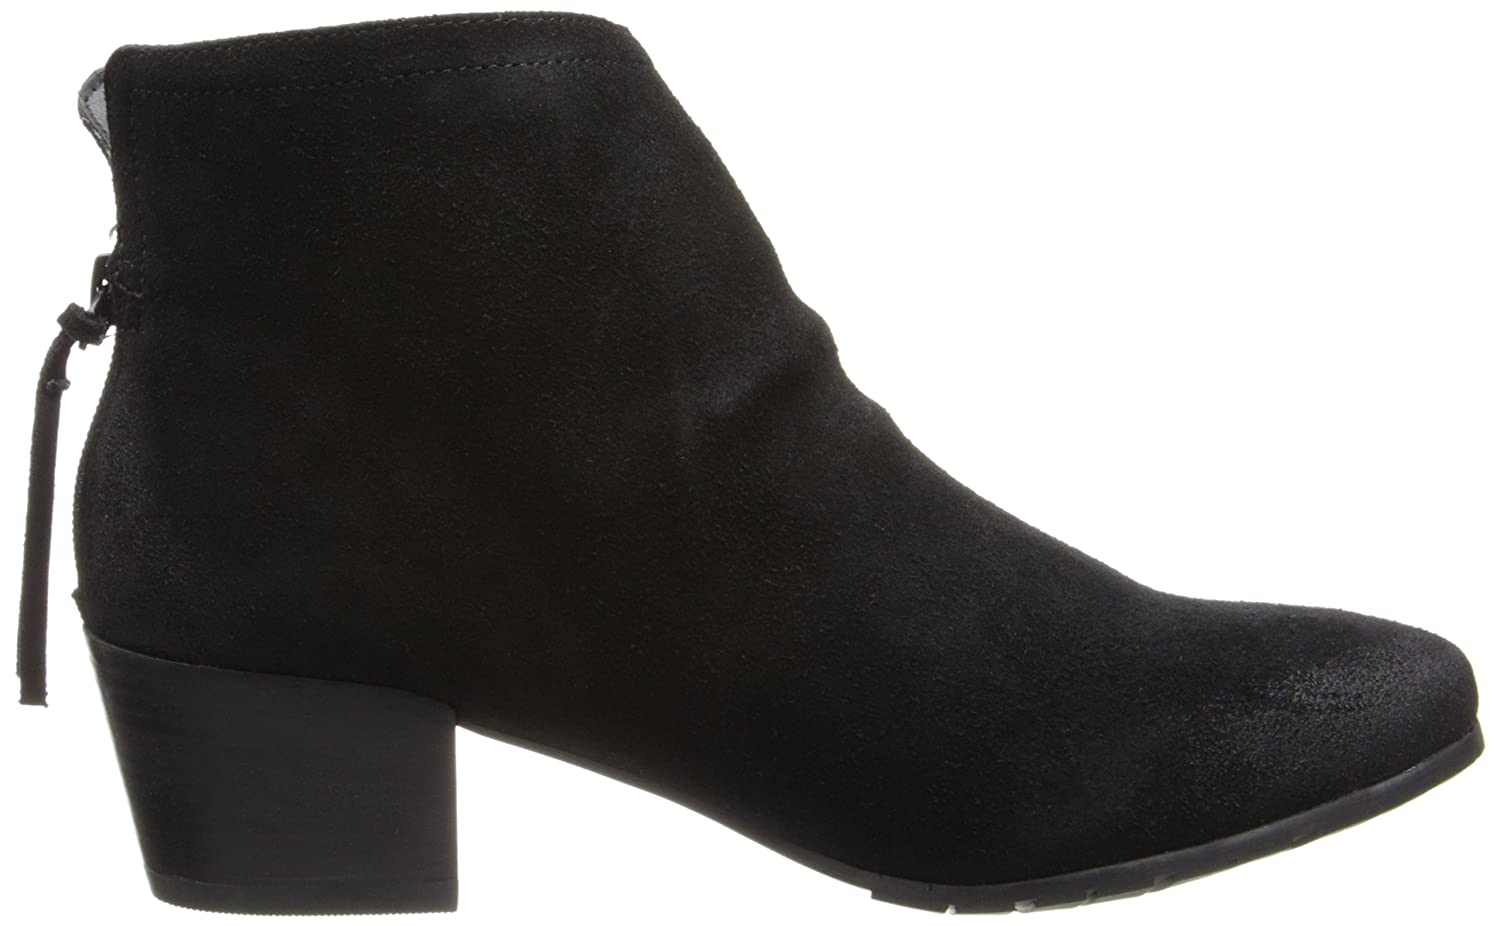 Kenneth Cole REACTION Women's Pil Age Ankle Boot B00IM5AAWI 7 B(M) US|Black